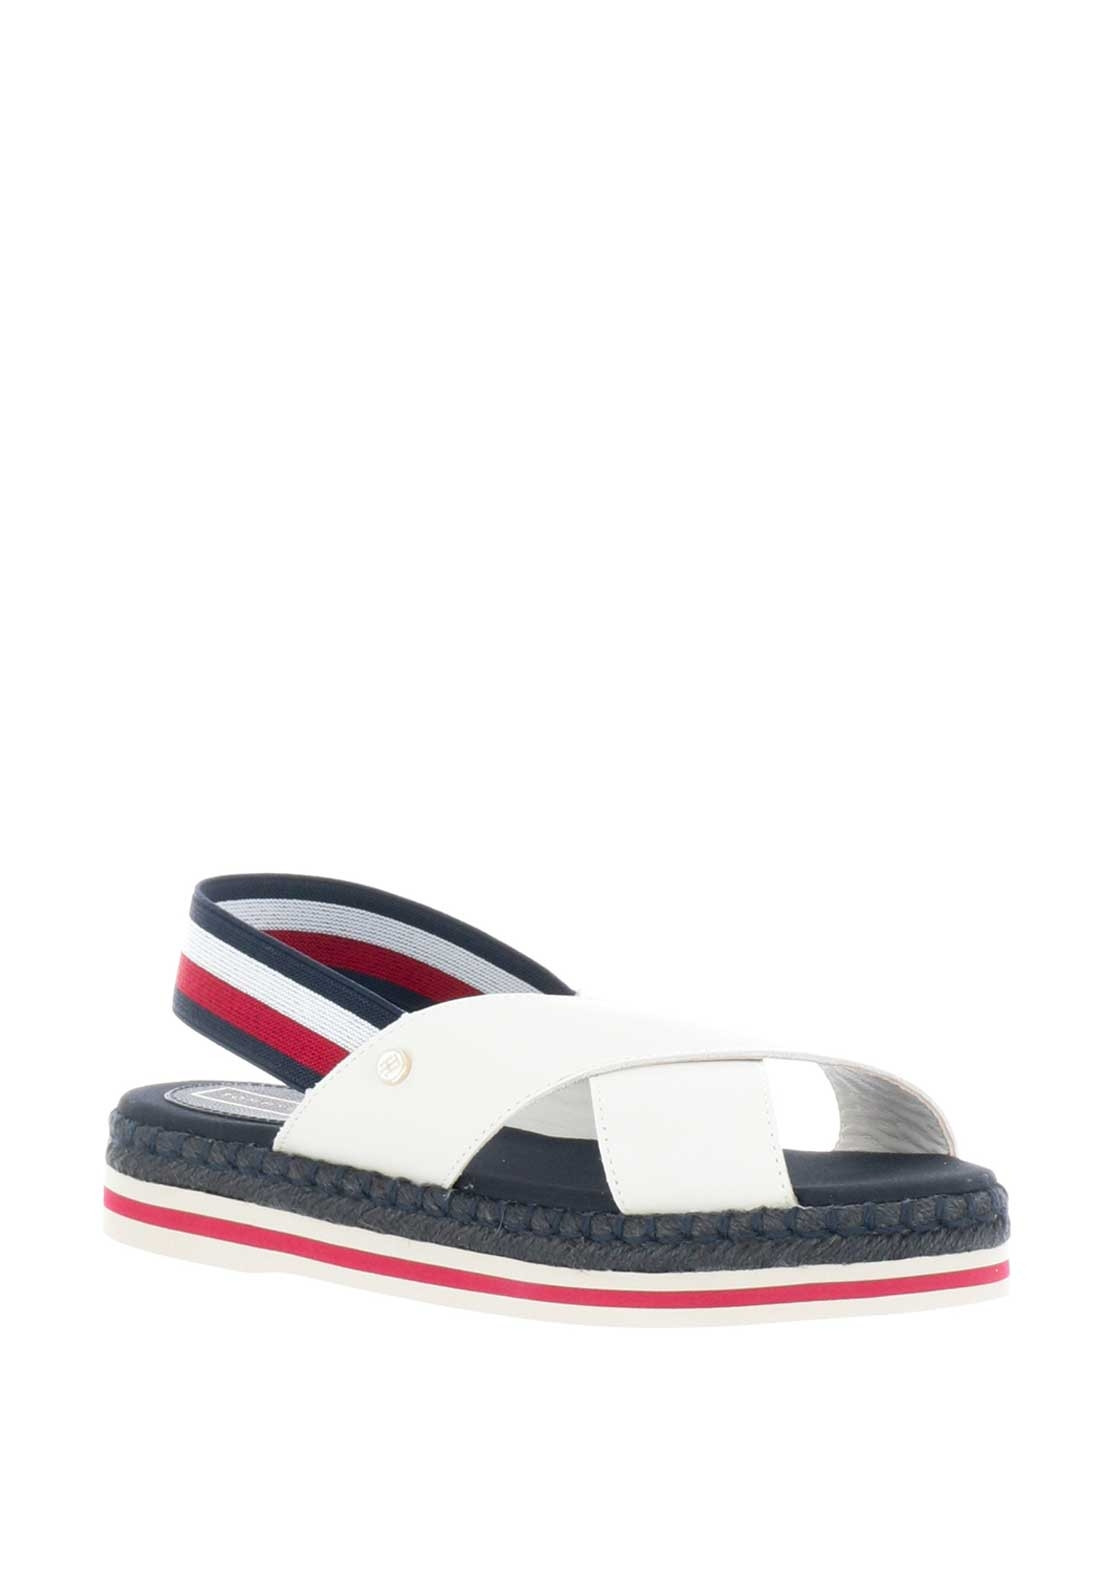 c78aeeeb Tommy Hilfiger Womens Leather Sling Back Rope Sandals, White ...